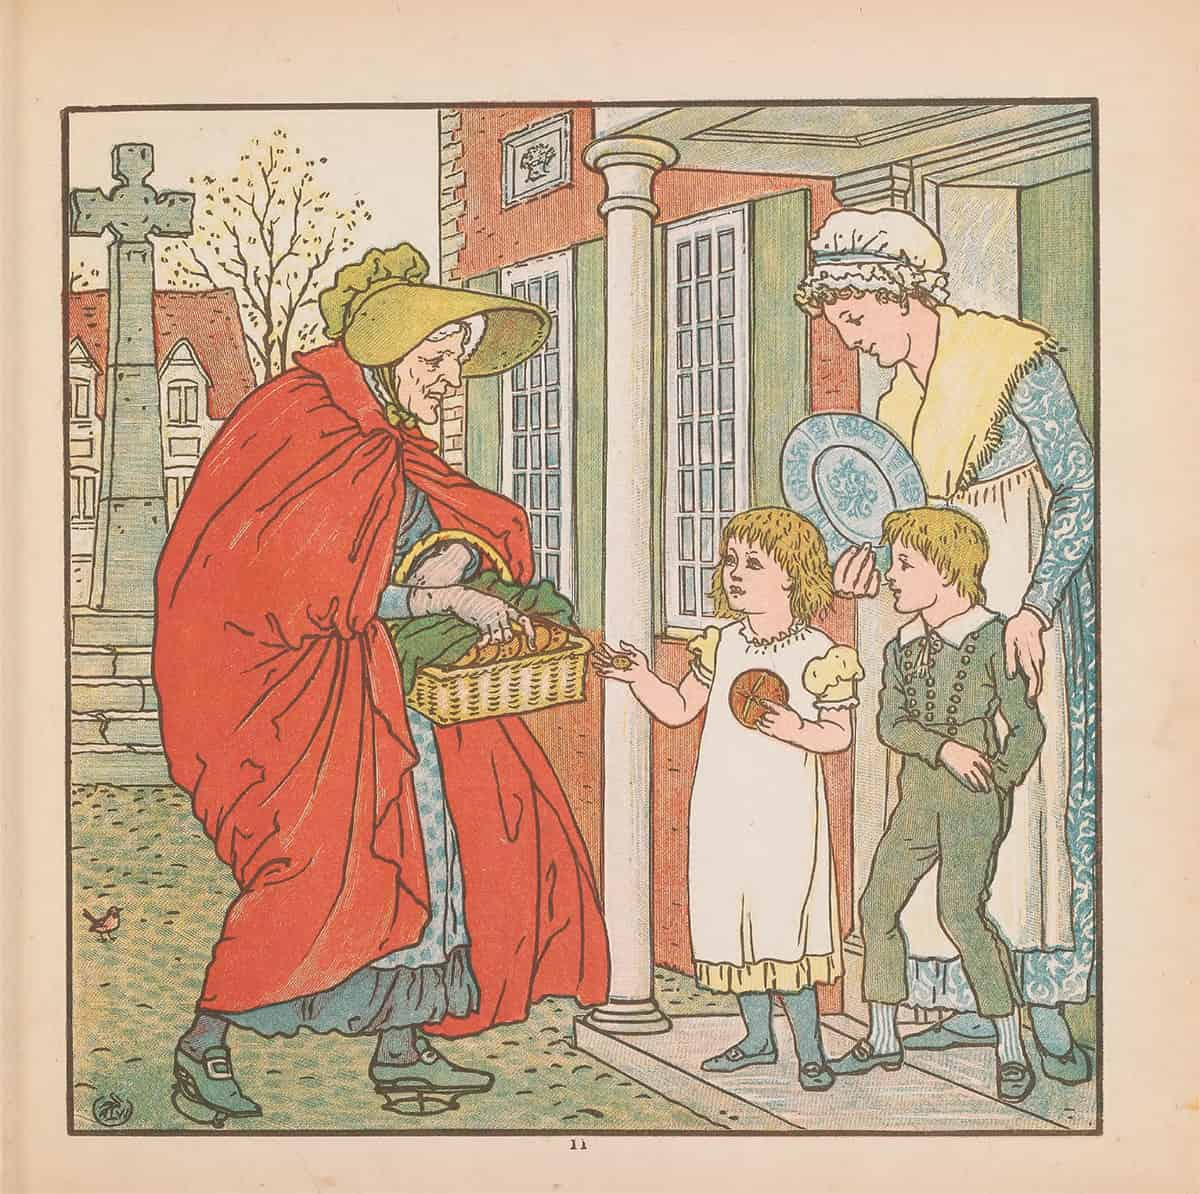 Hot Cross Buns 19th century illustration of old woman selling Hot Cross Buns to two children and their mother - from The Baby's Bouquet by Walter Crane published 1878